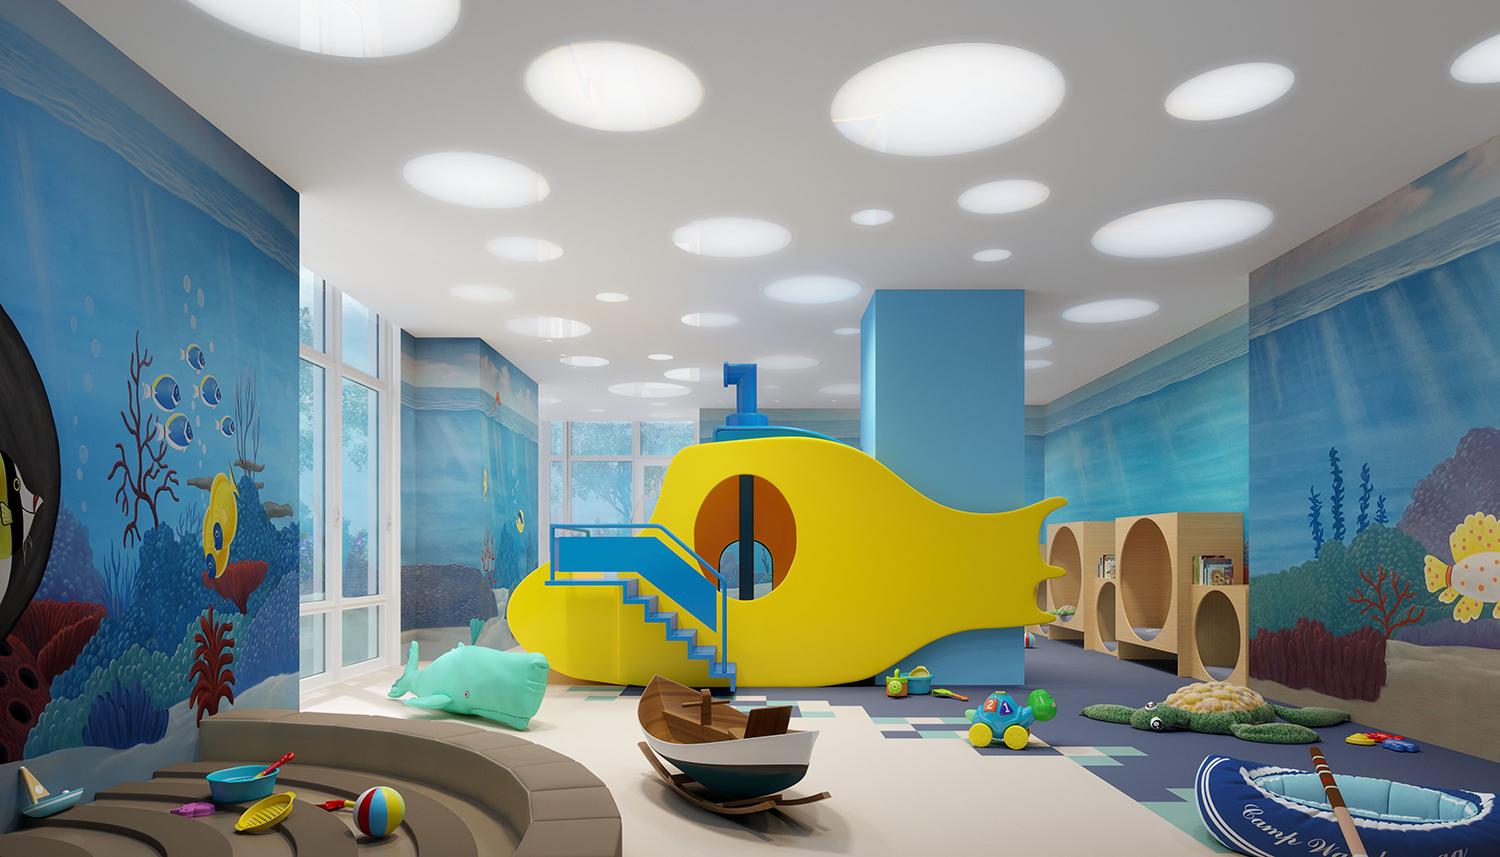 Rendering of the kids room at the Easton. Credit: Moso Studio.